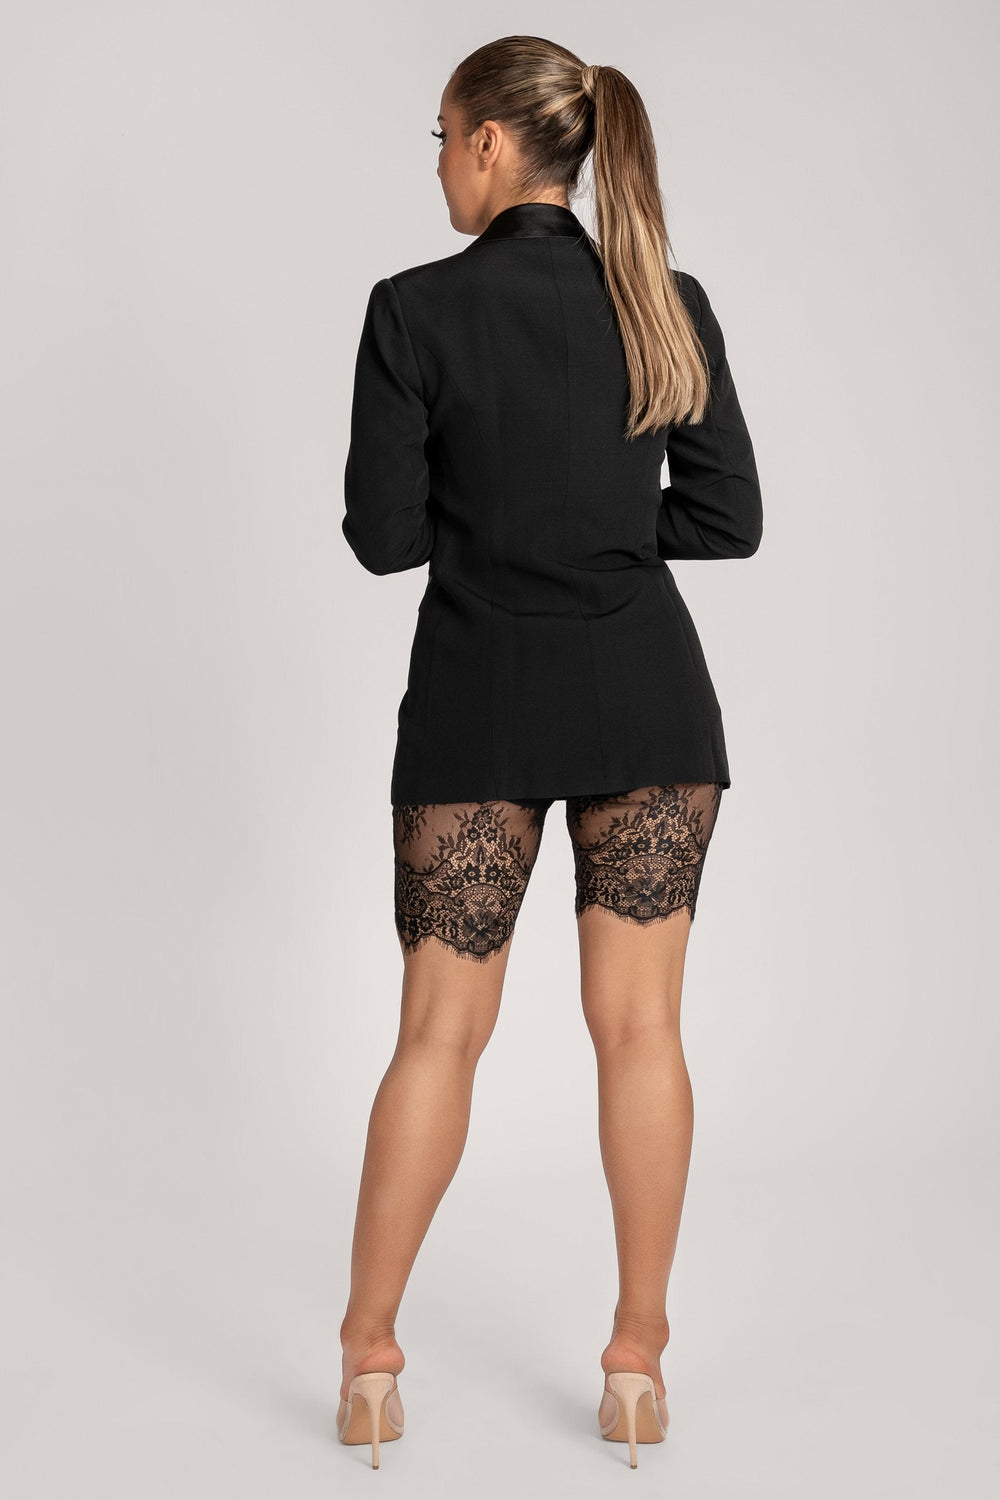 Stacie Lace Panel Bike Shorts - Black - MESHKI ?id=16147334037579